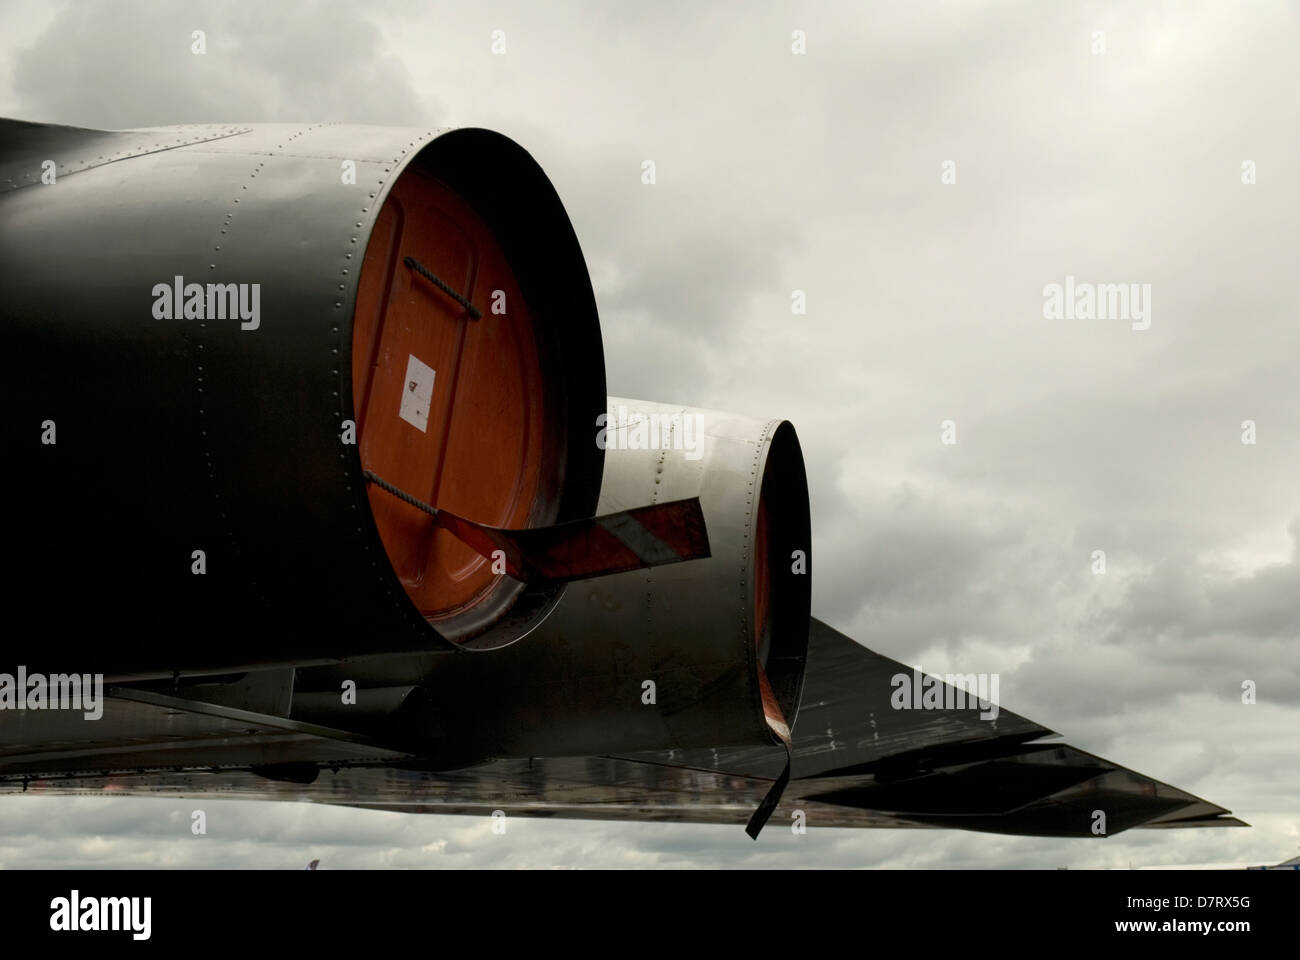 vulcan bomber wing and engines from rear farnborough air show - Stock Image